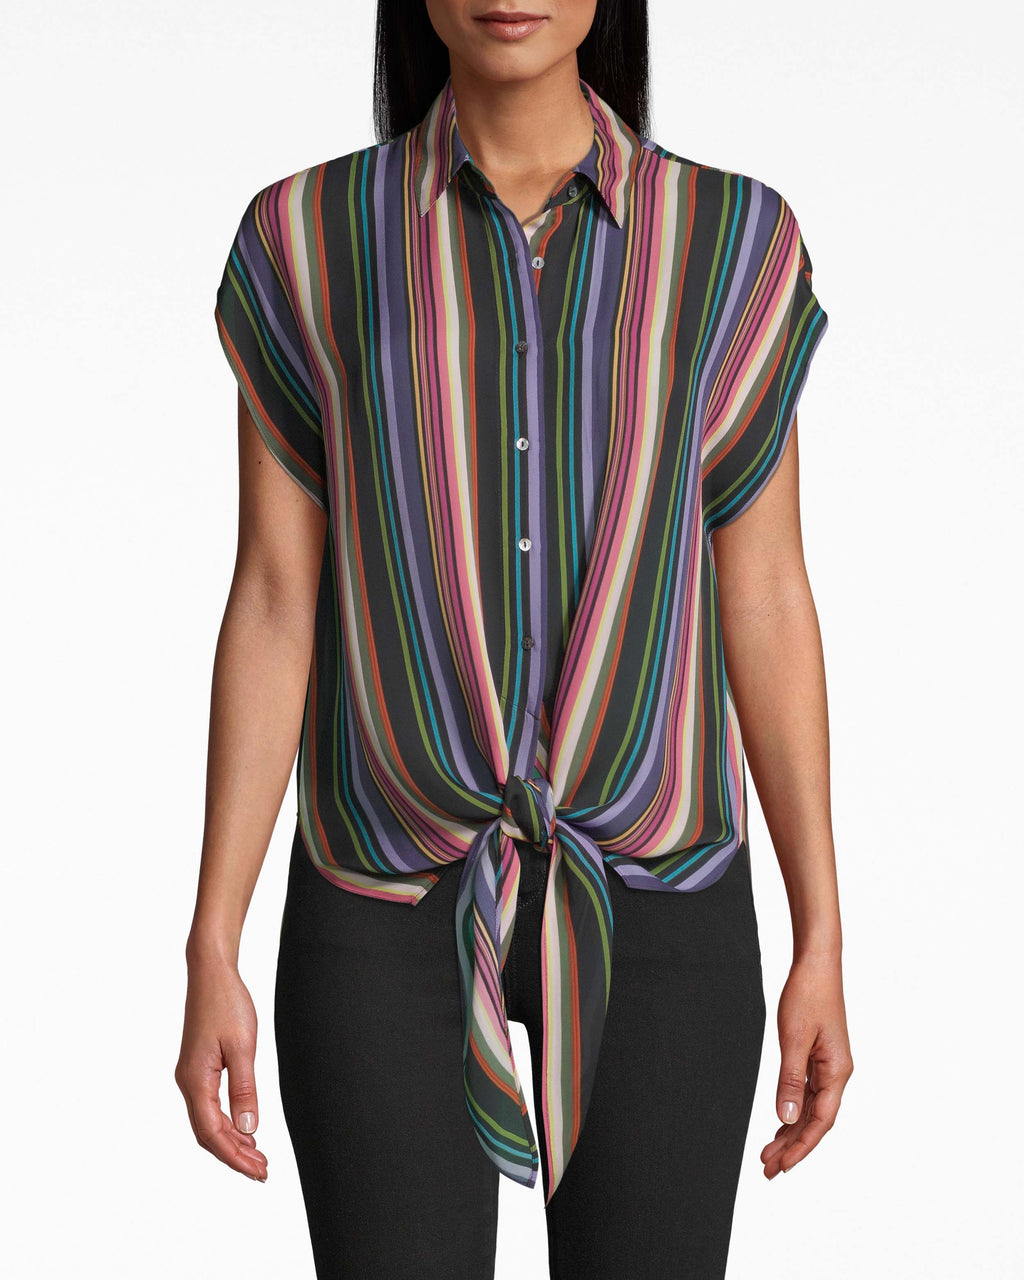 BC20045 - DOWNTOWN STRIPE BUTTON UP TIE TOP - tops - shirts - Casual. Spirited stripes give a pop to this collared, button down top. The short sleeves have a drapey effect and the front tie tops off the look. Elevate with a leather jacket.